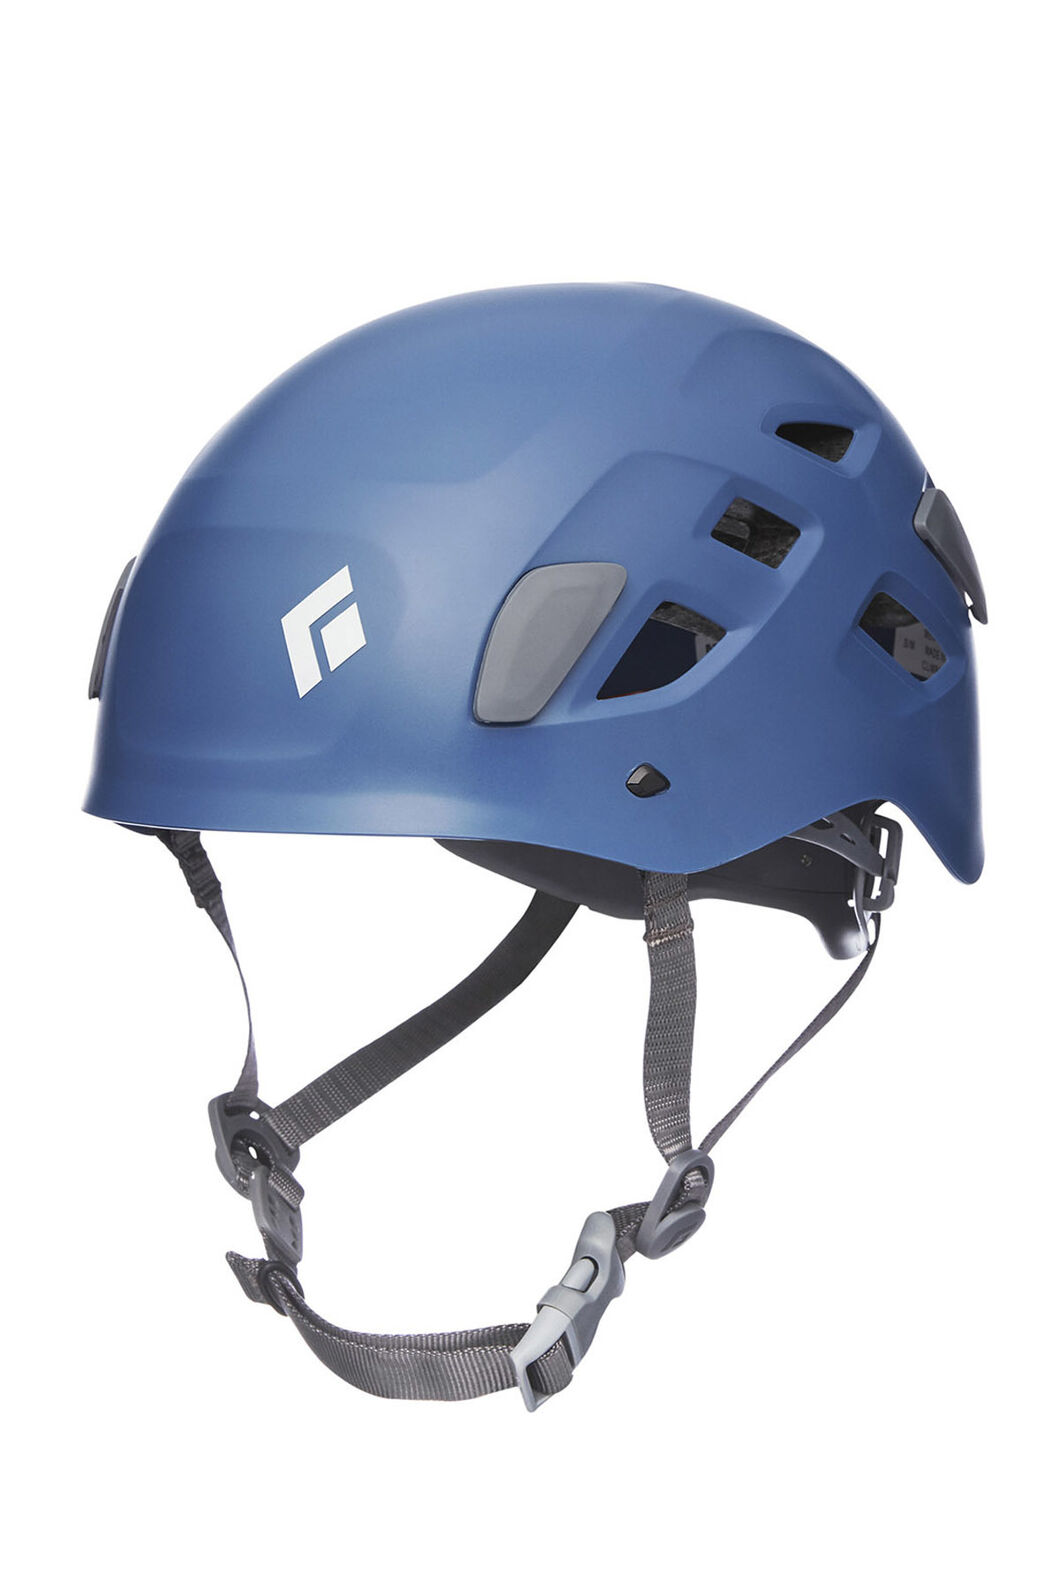 Black Diamond Half Dome Helmet, Ultra Blue, hi-res